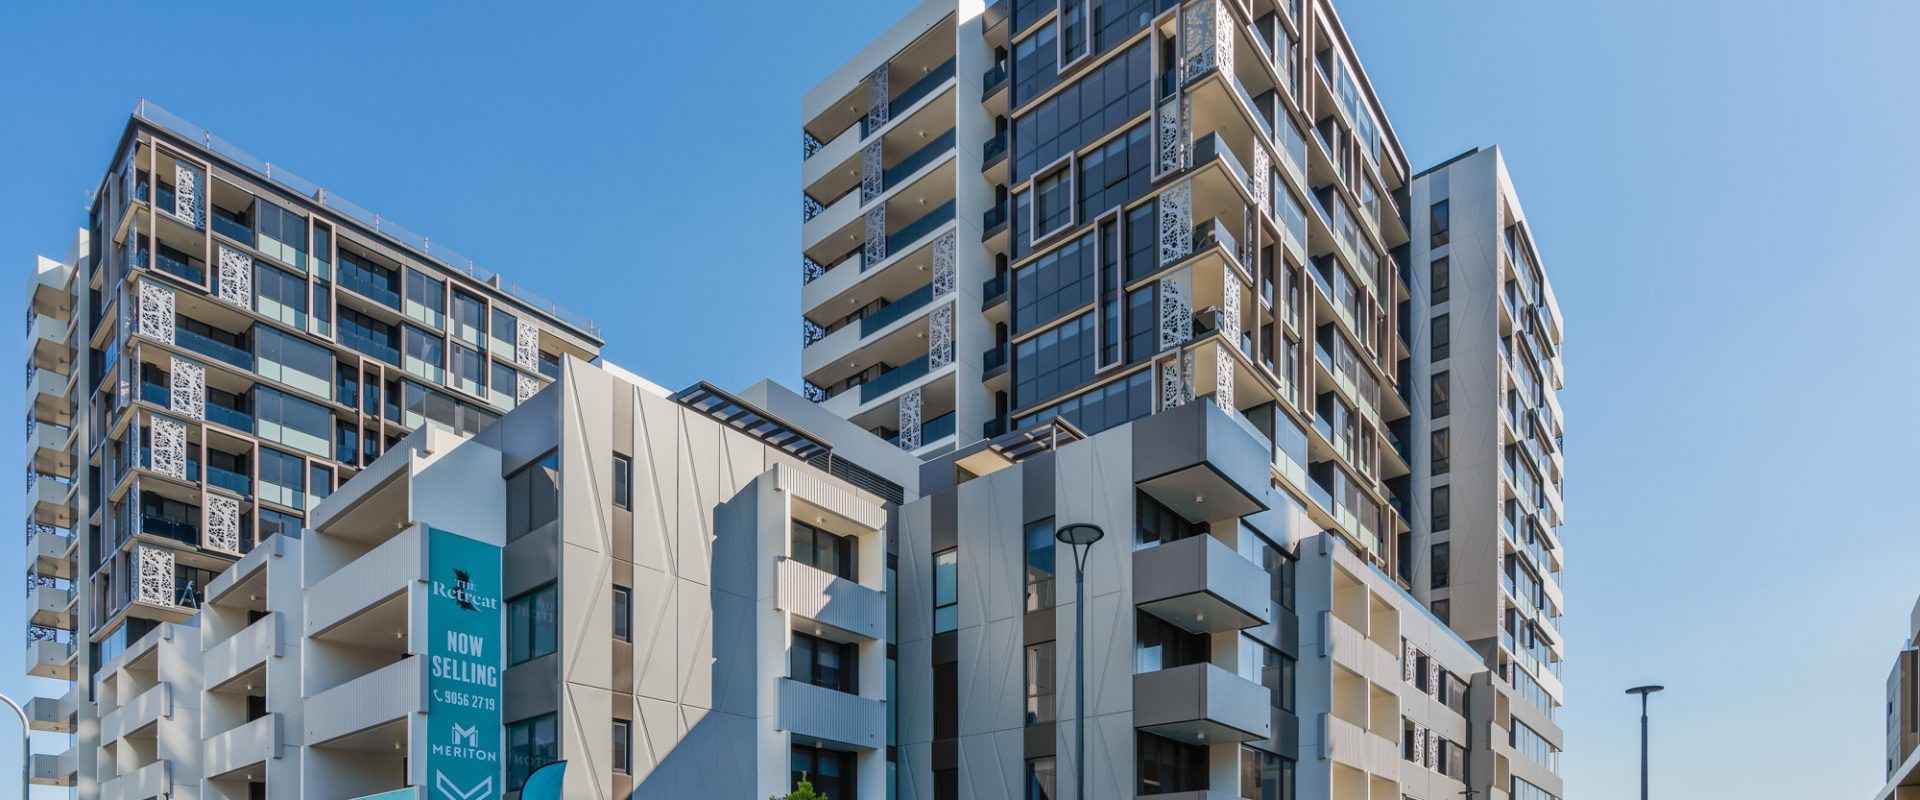 Apartments for Rent Lidcombe NSW | The Retreat - Element ...